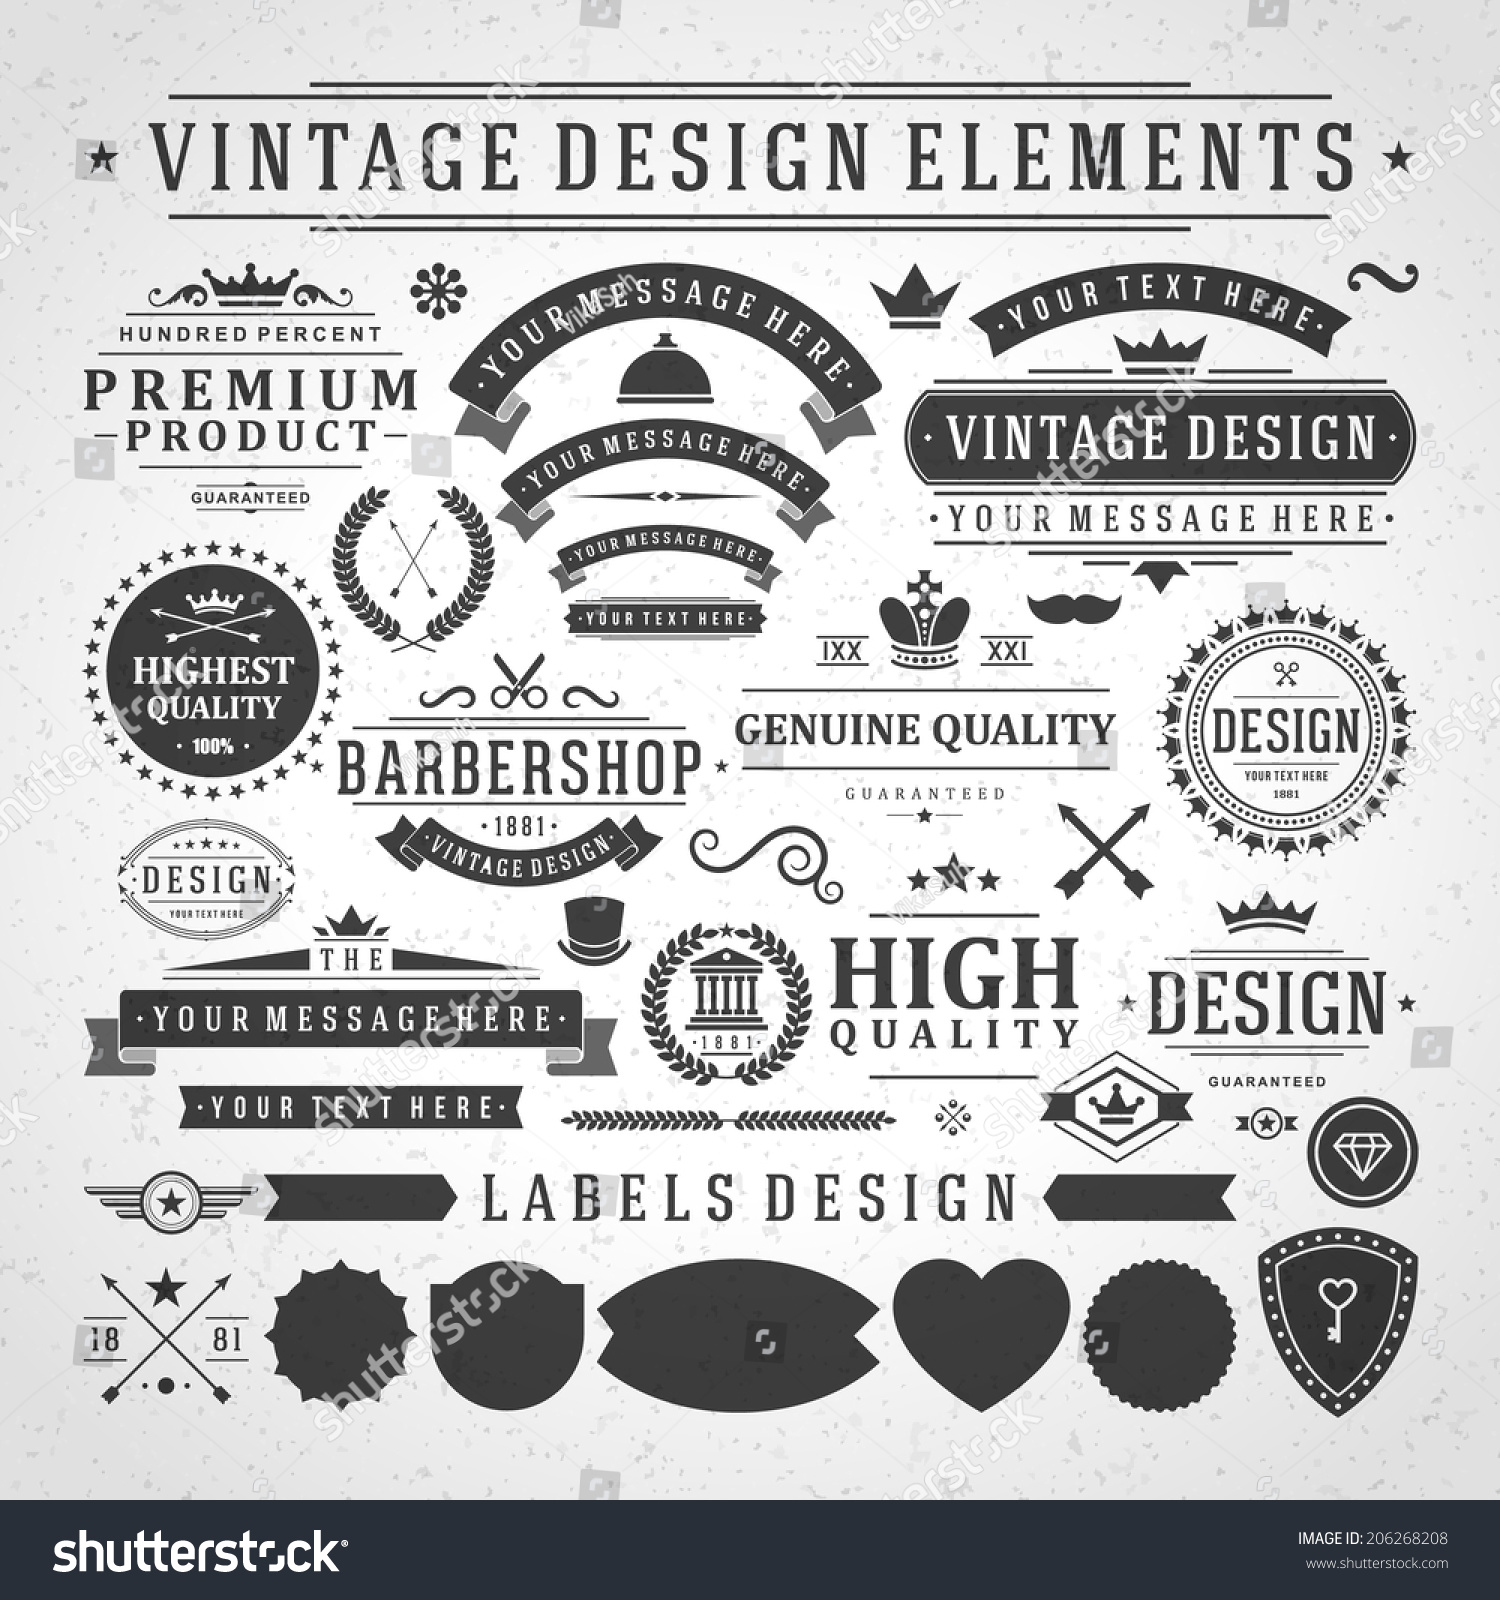 Vintage Vector Design Elements. Retro Style Golden ...